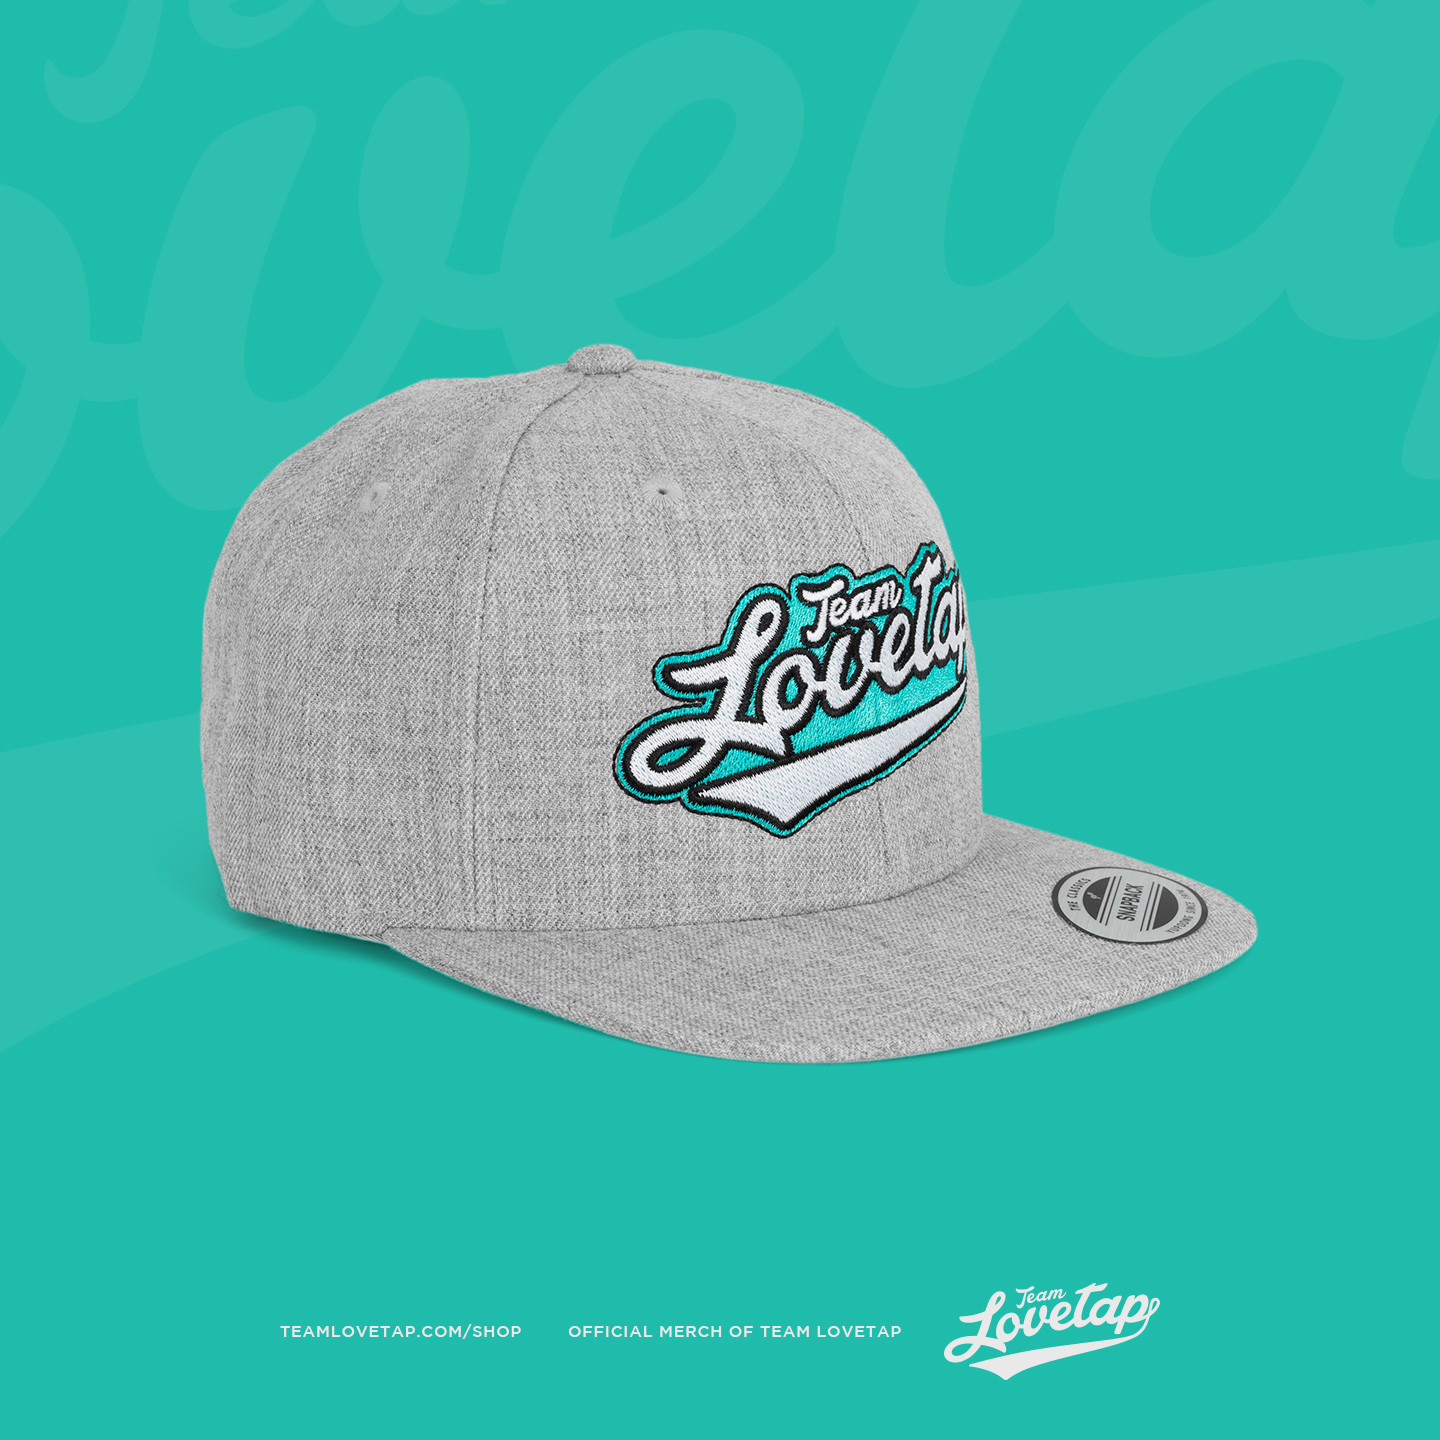 snapback_lightgray_teamlovetap_01.jpg